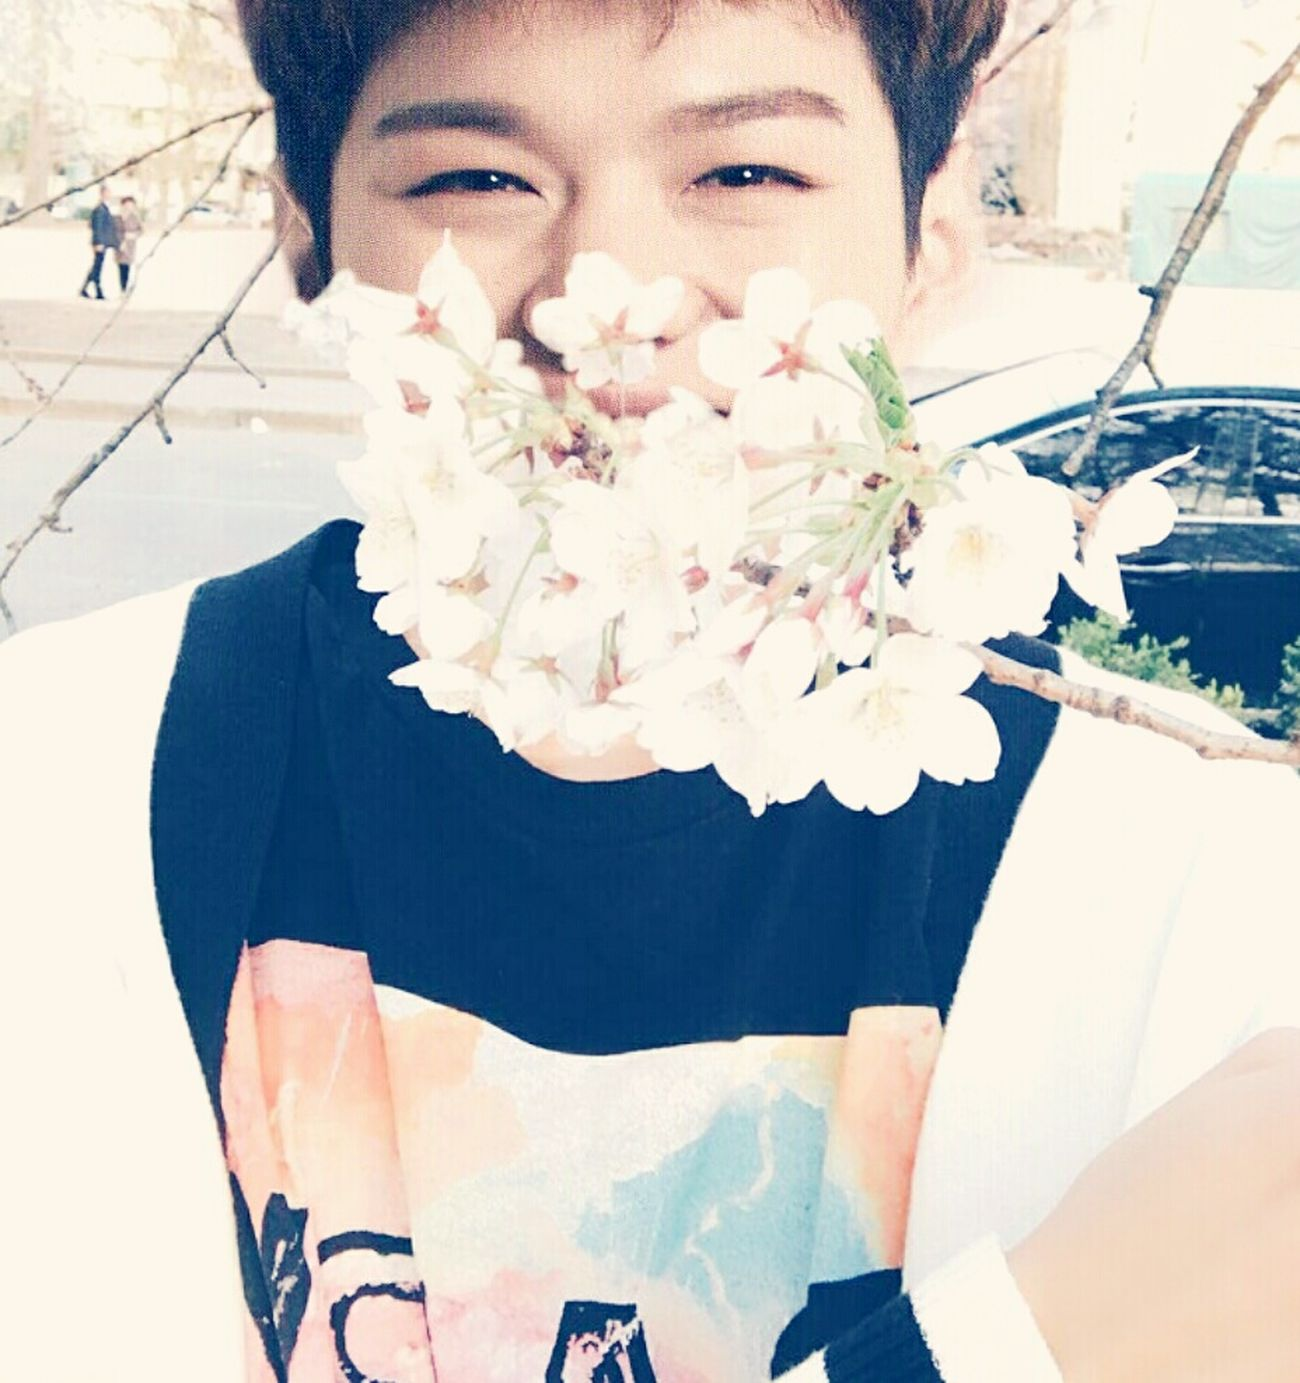 First Eyeem Photo Portrait Smiling Selfie Young Adult One Person Faceswap Kpop Edit MonstaX Minhyuk  Btob Changsub Looking At Camera BTOB Flowers Cute